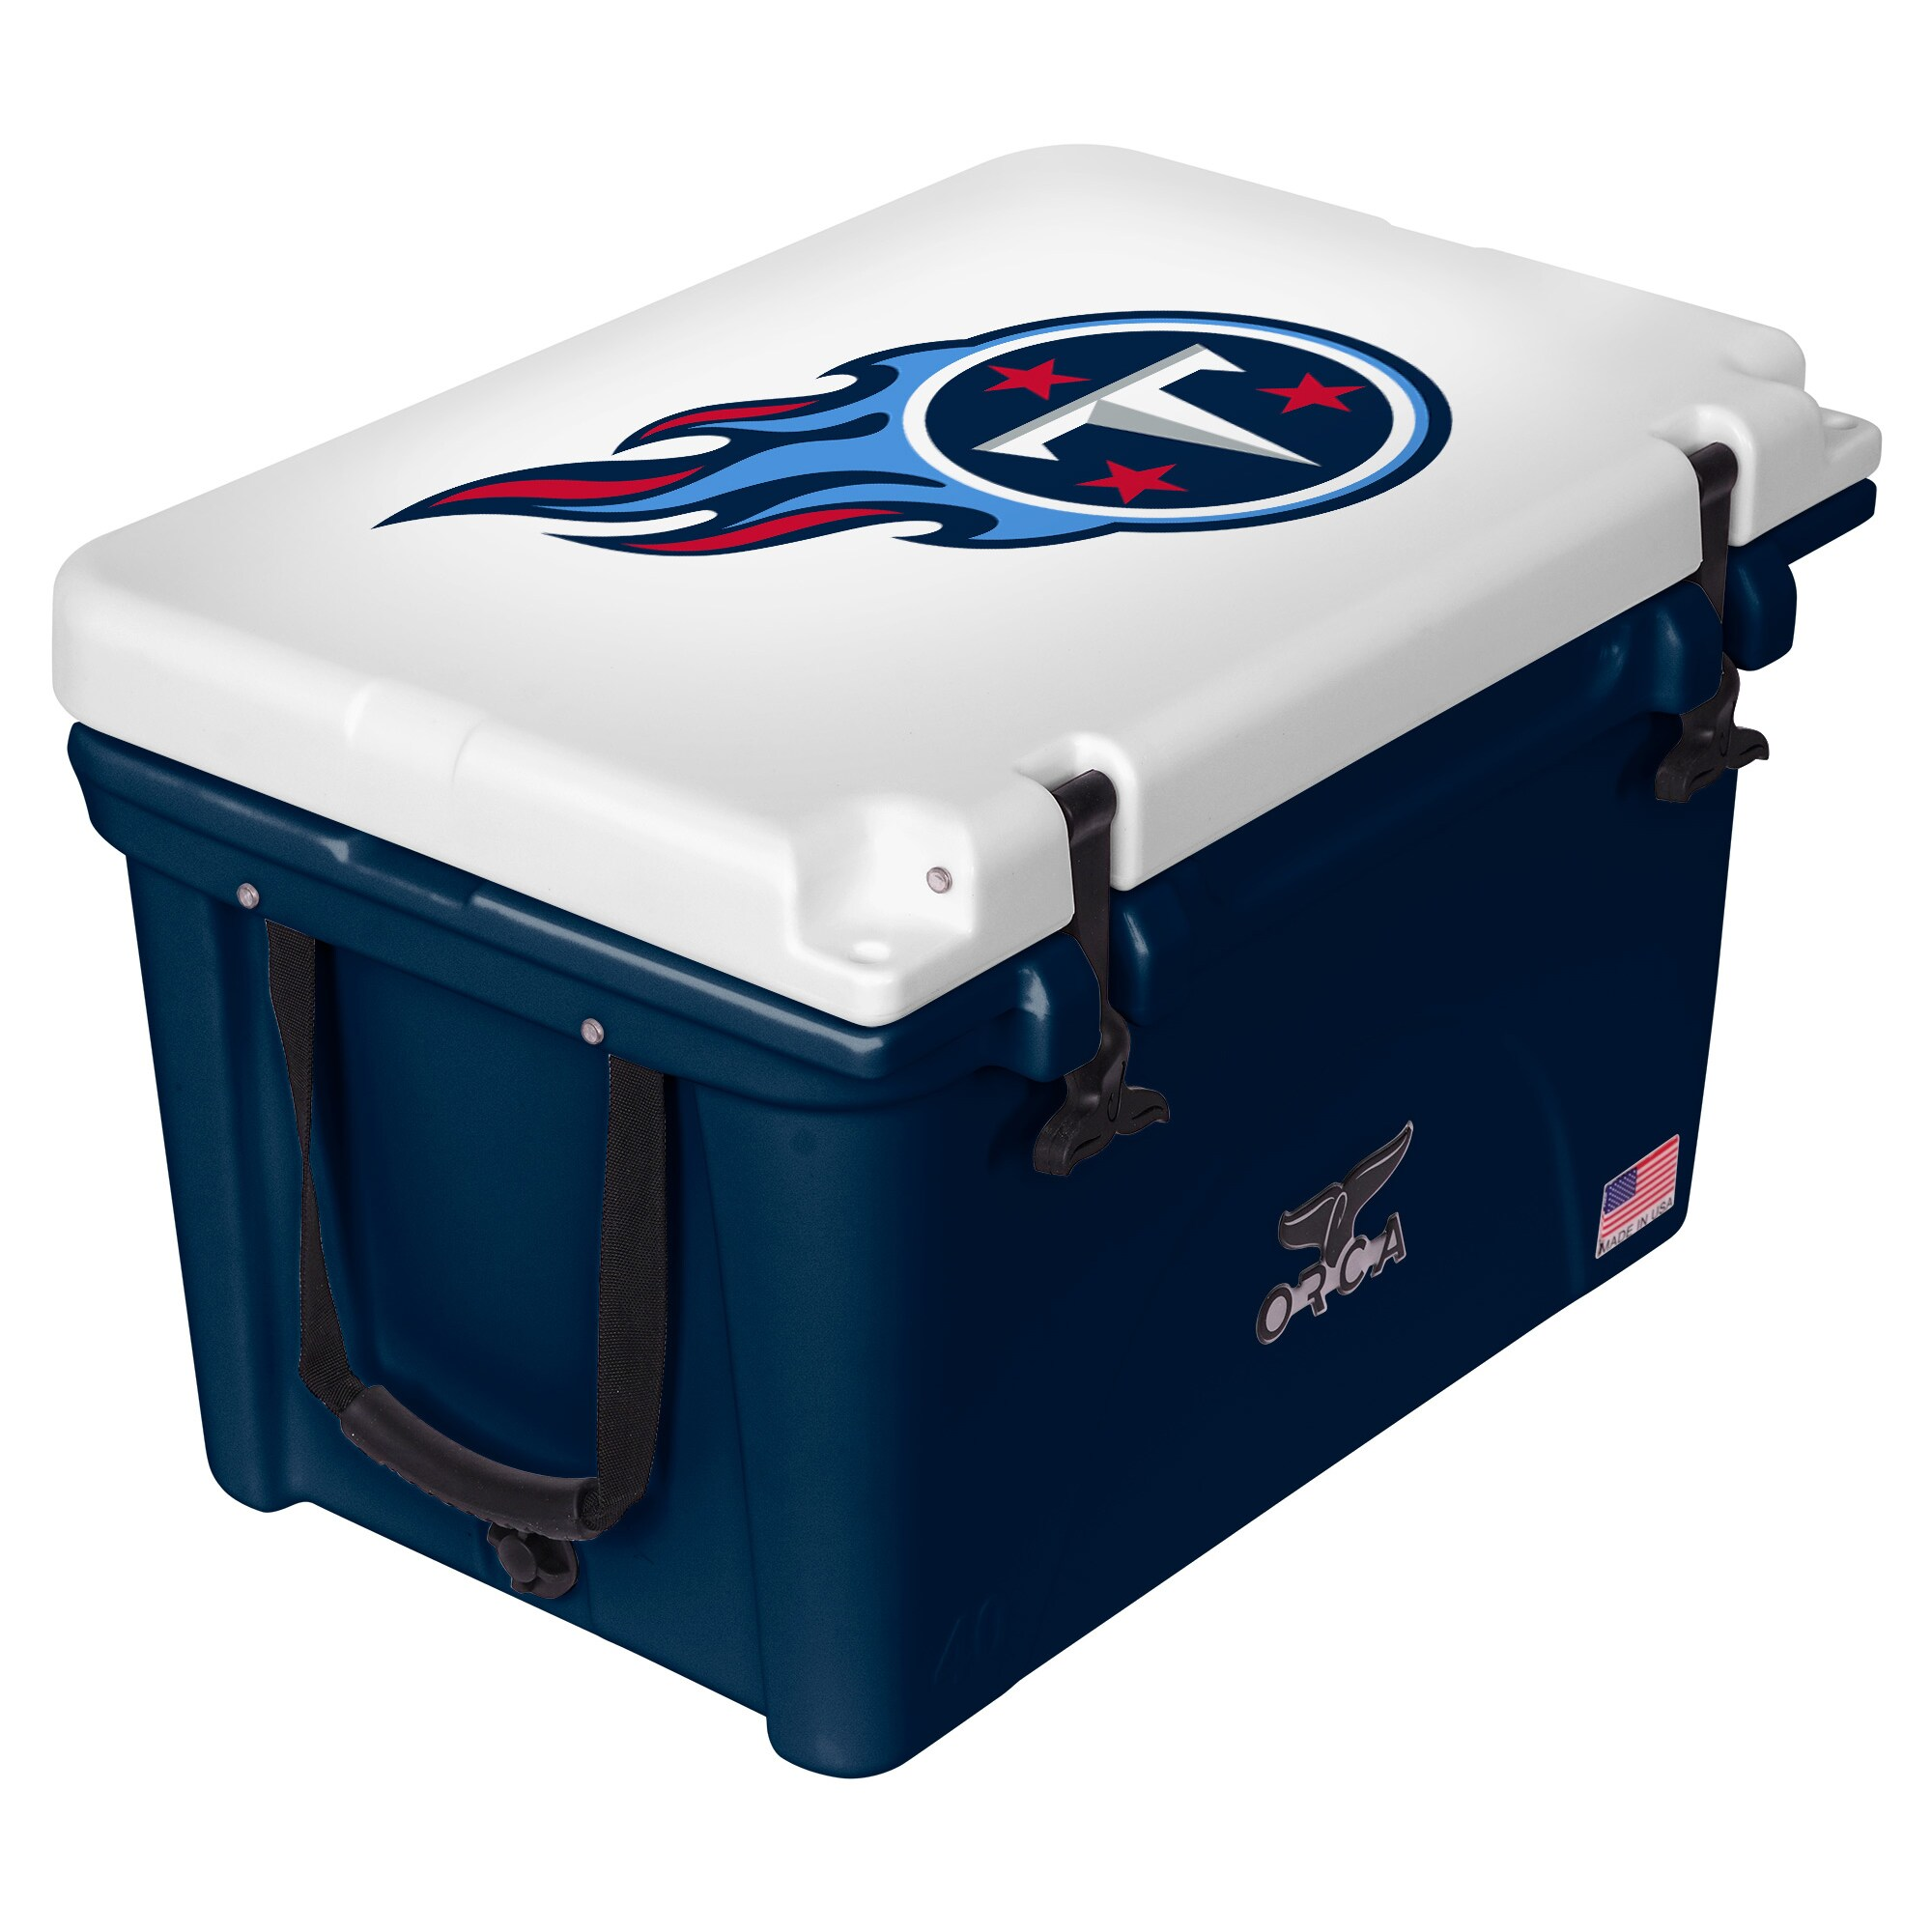 Tennessee Titans ORCA 40-Quart Hard-Sided Cooler - Navy/White